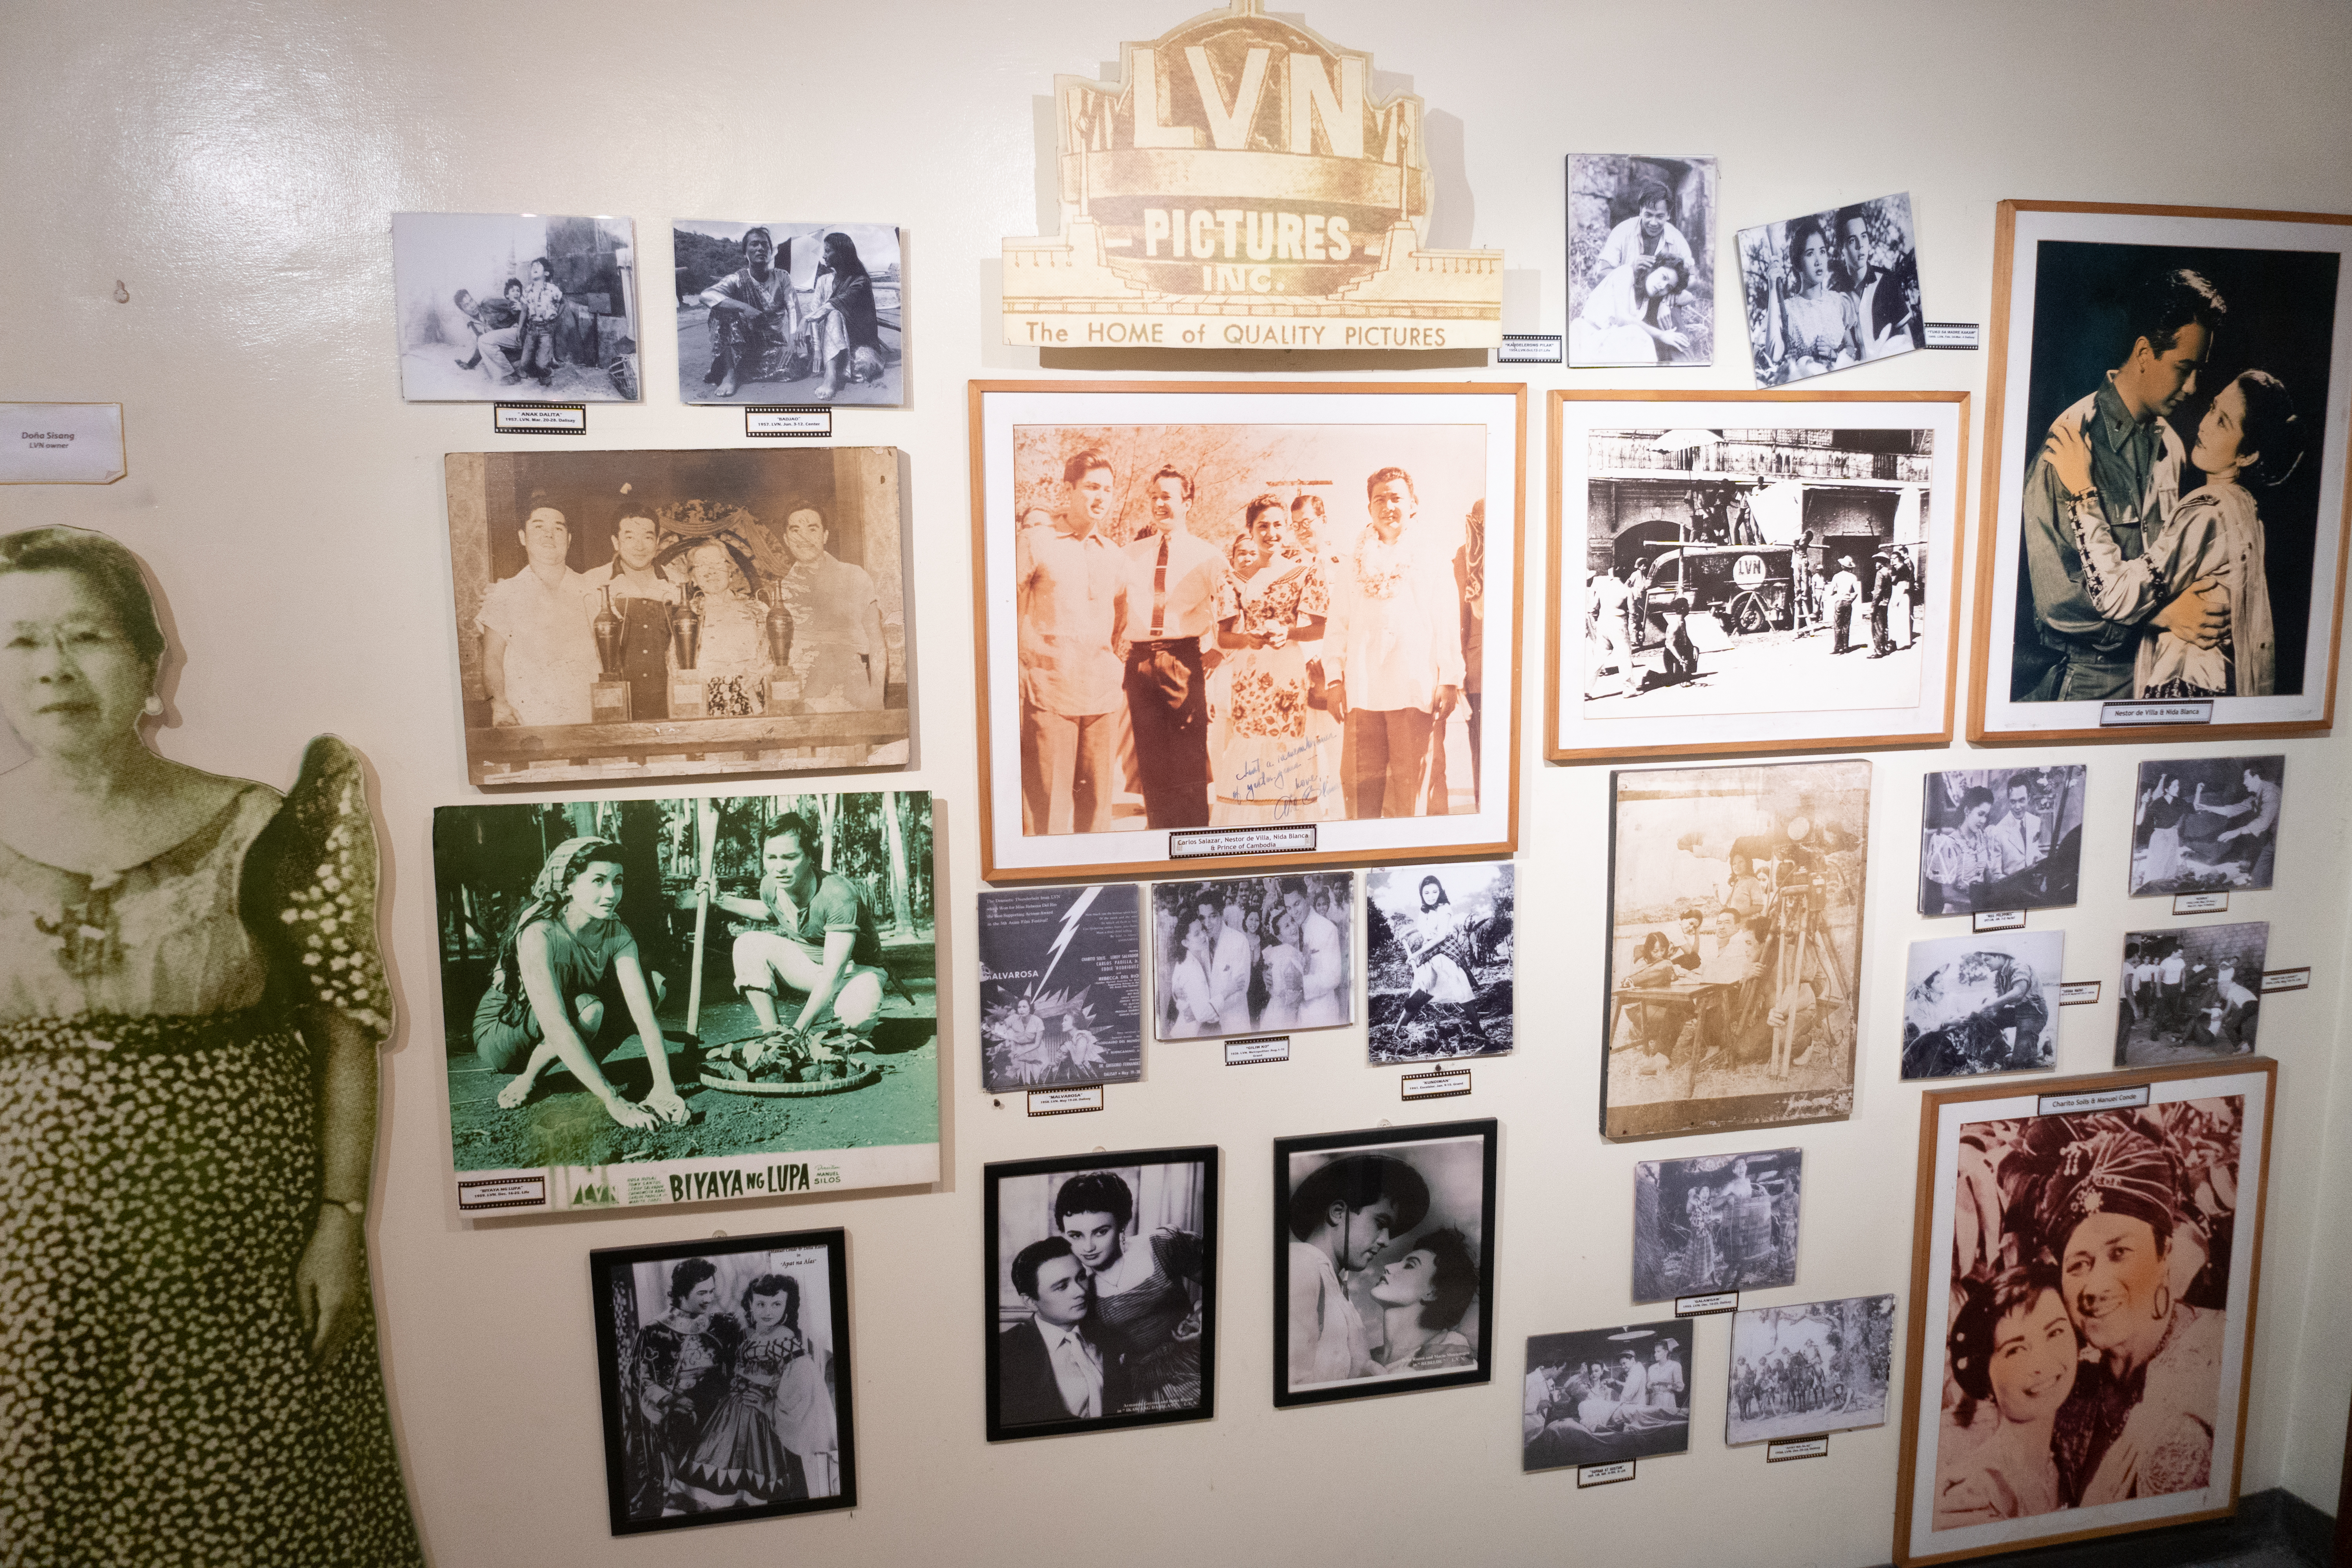 LVN. Photos of some of LVN Pictures' movies and tandems are displayed at Mowelfund's Museum in Quezon City.